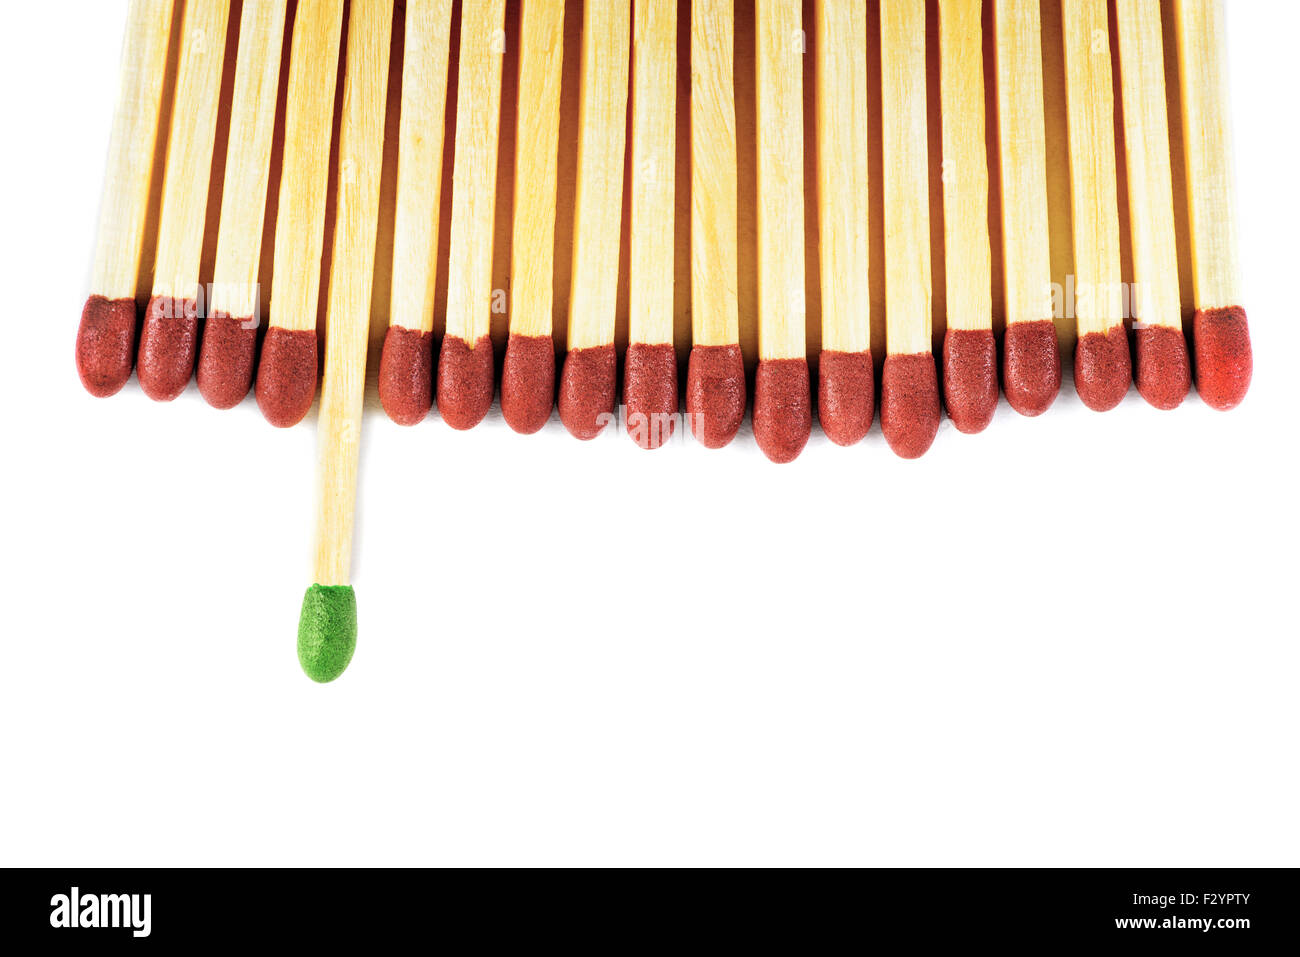 Green matchstick leadership concept isolated on white - Stock Image